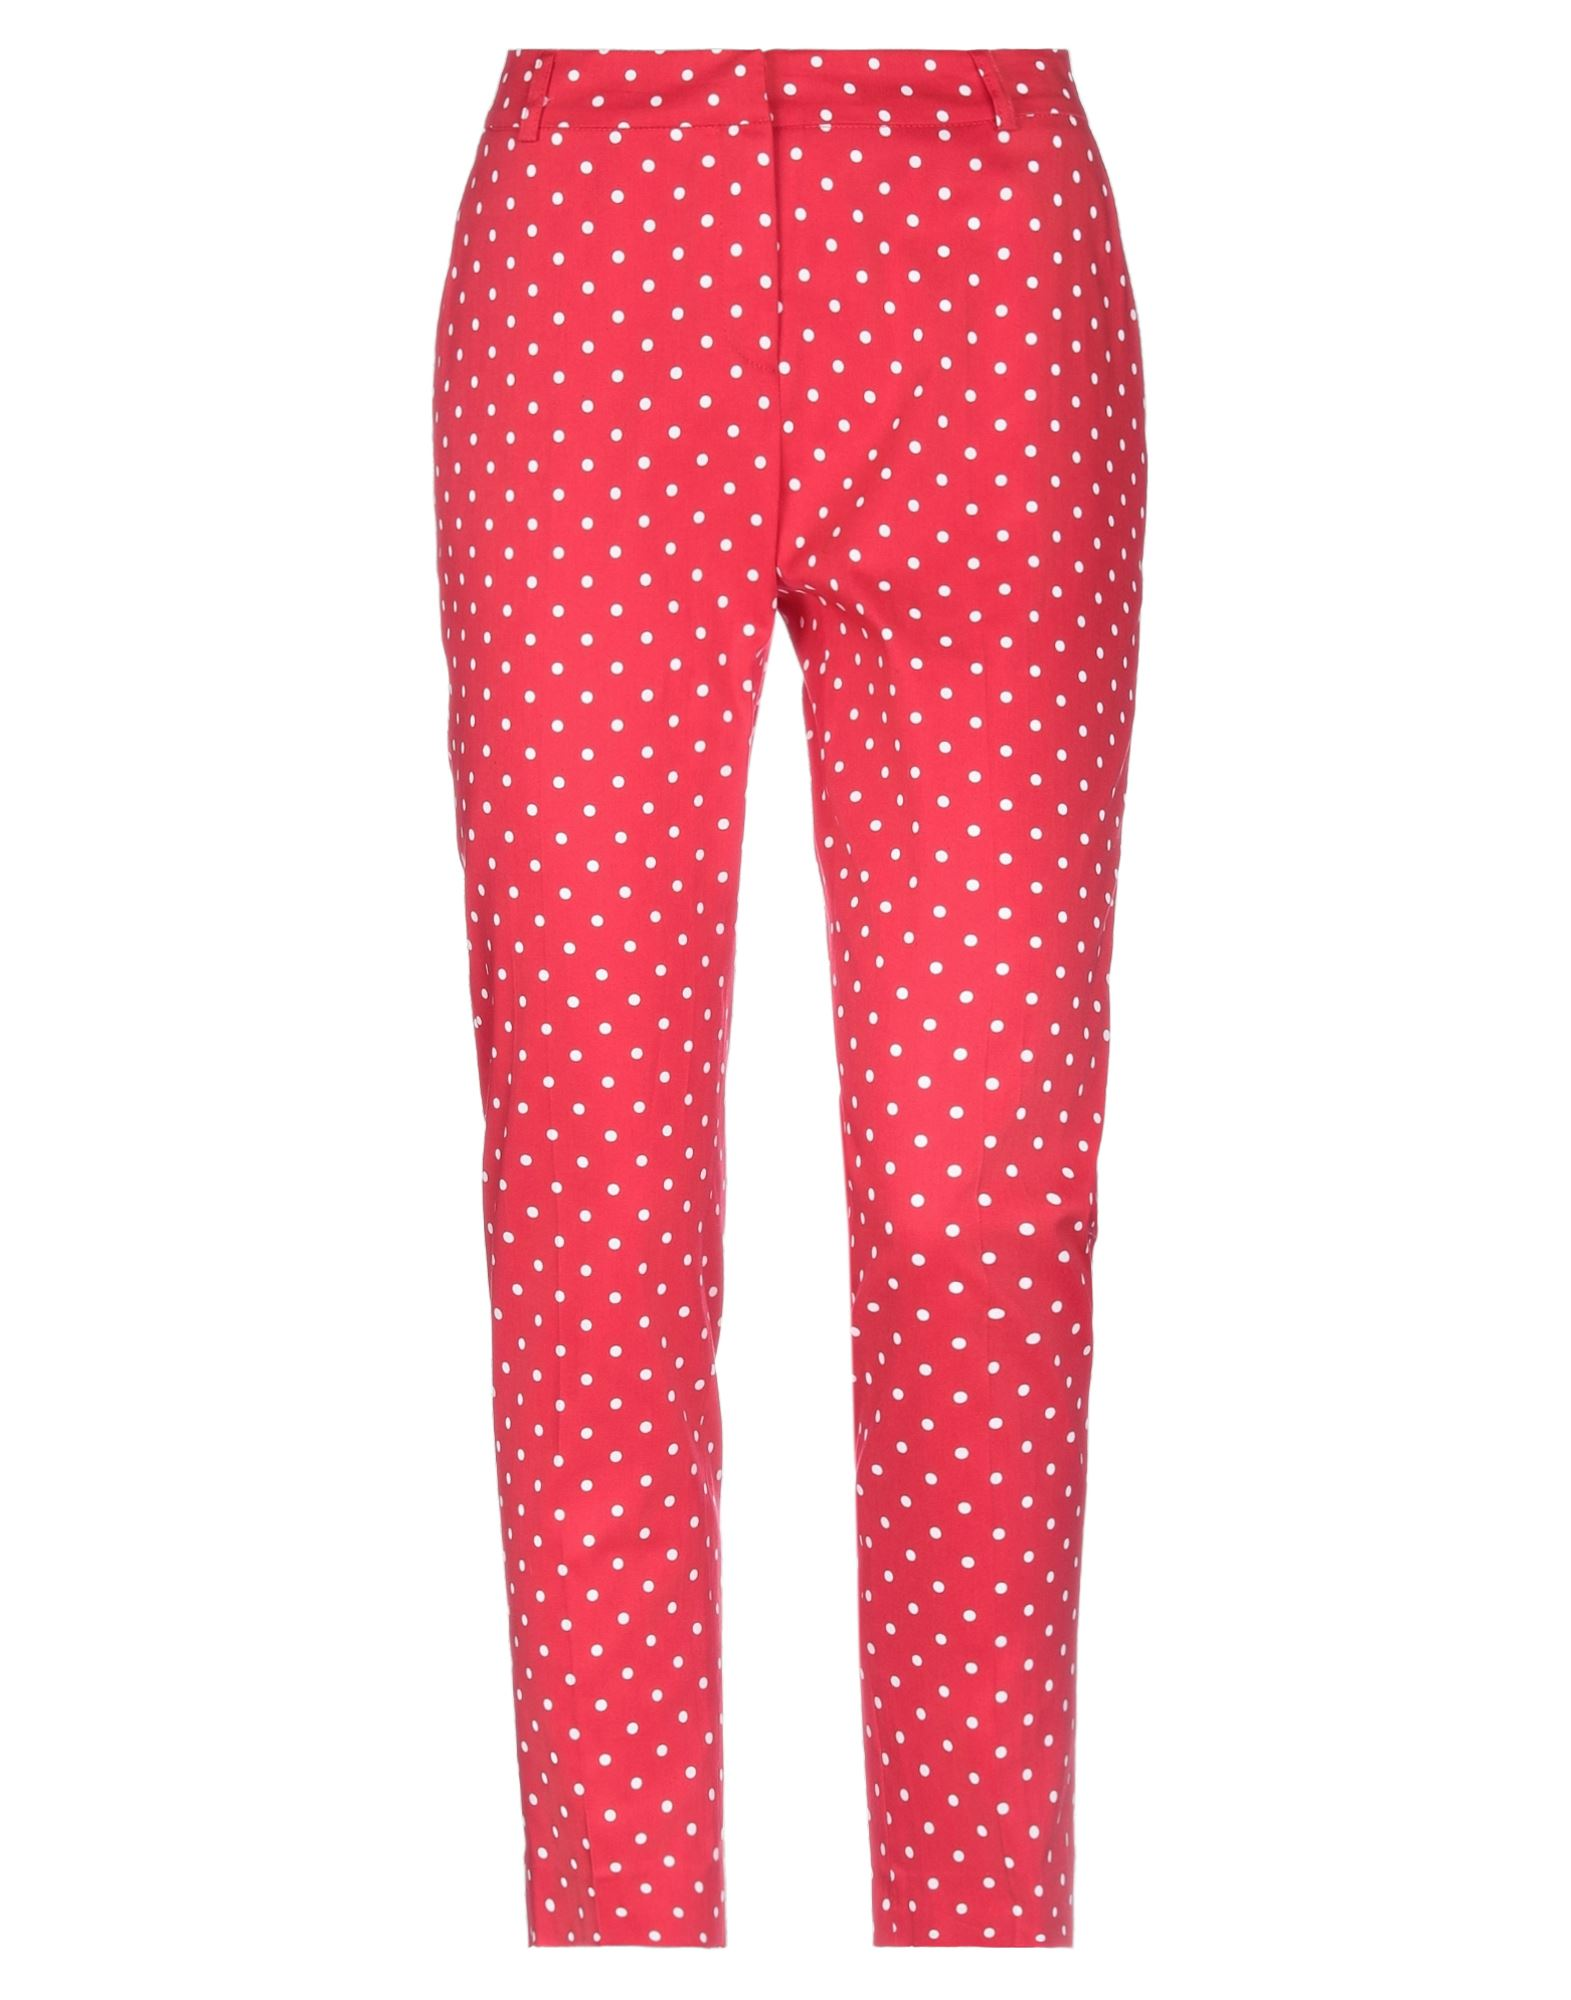 HOPE COLLECTION Casual pants - Item 13545860